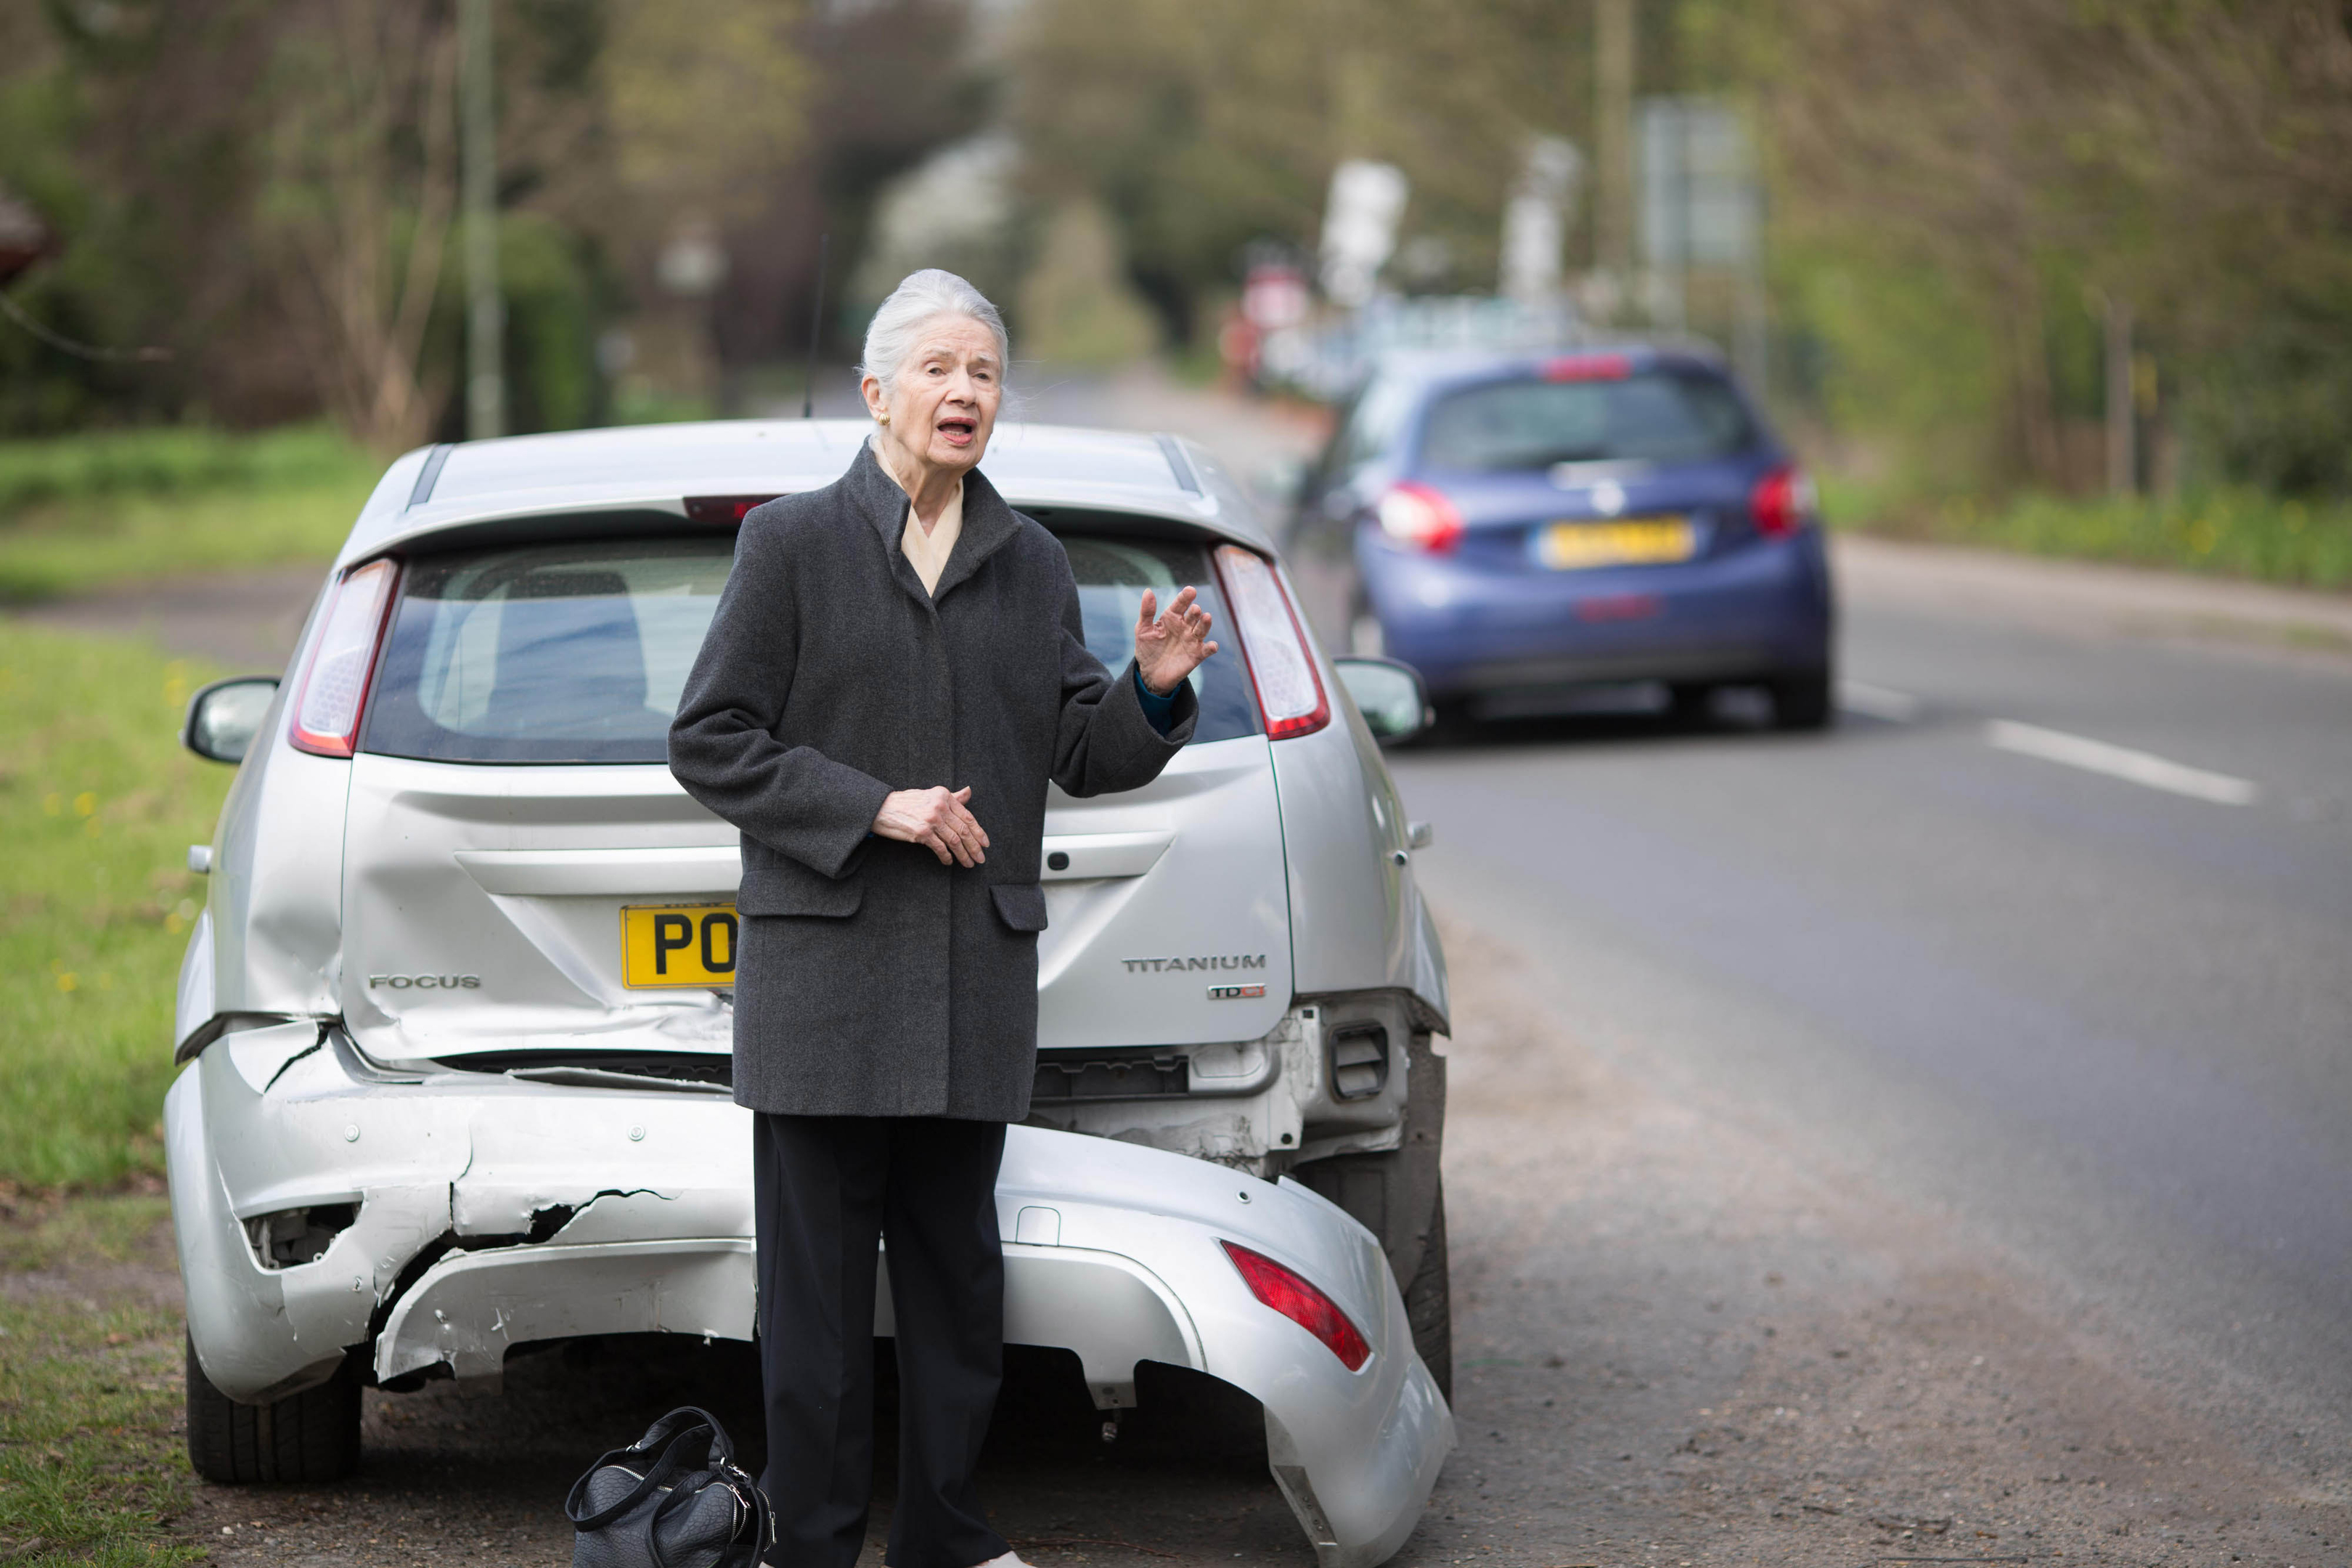 A road safety experiment to see if members of the public stop to assist stranded drivers when their car is left undriveable after an accident is conducted by Direct Line Motor Insurance (David Parry/PA Wire)